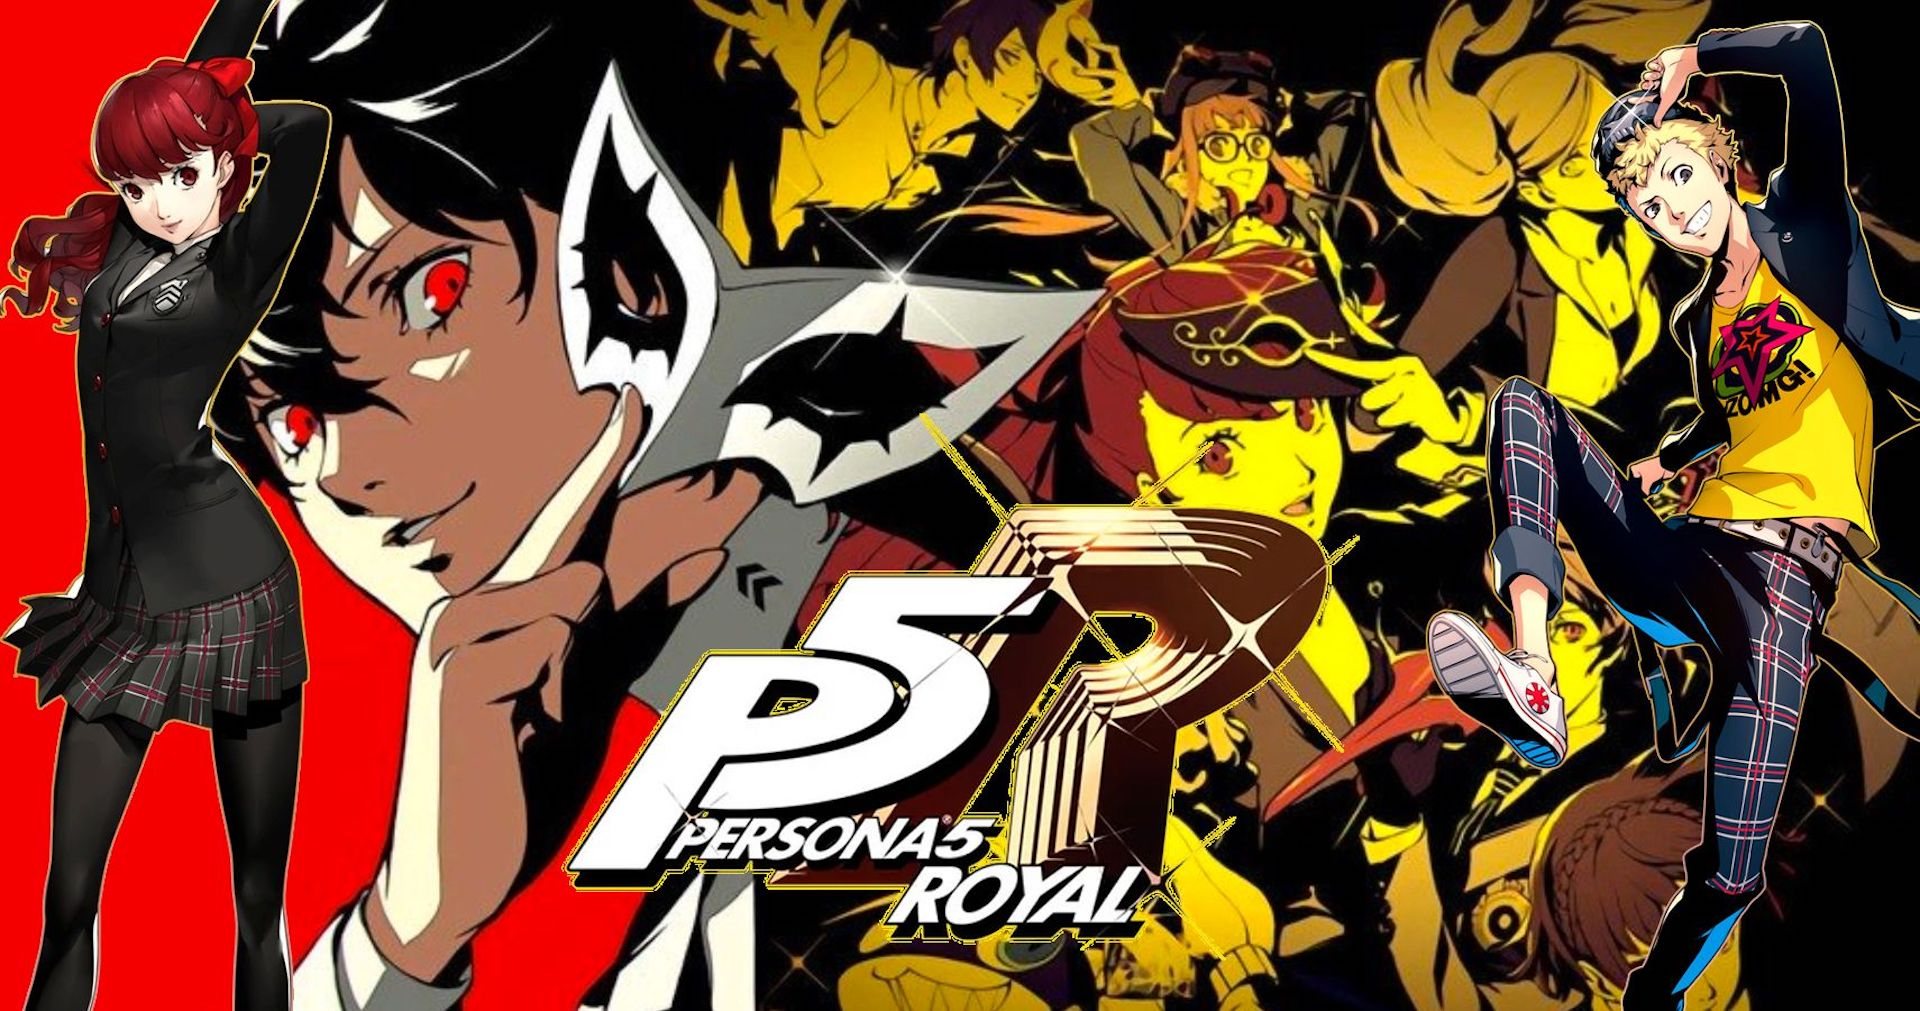 5 royal person